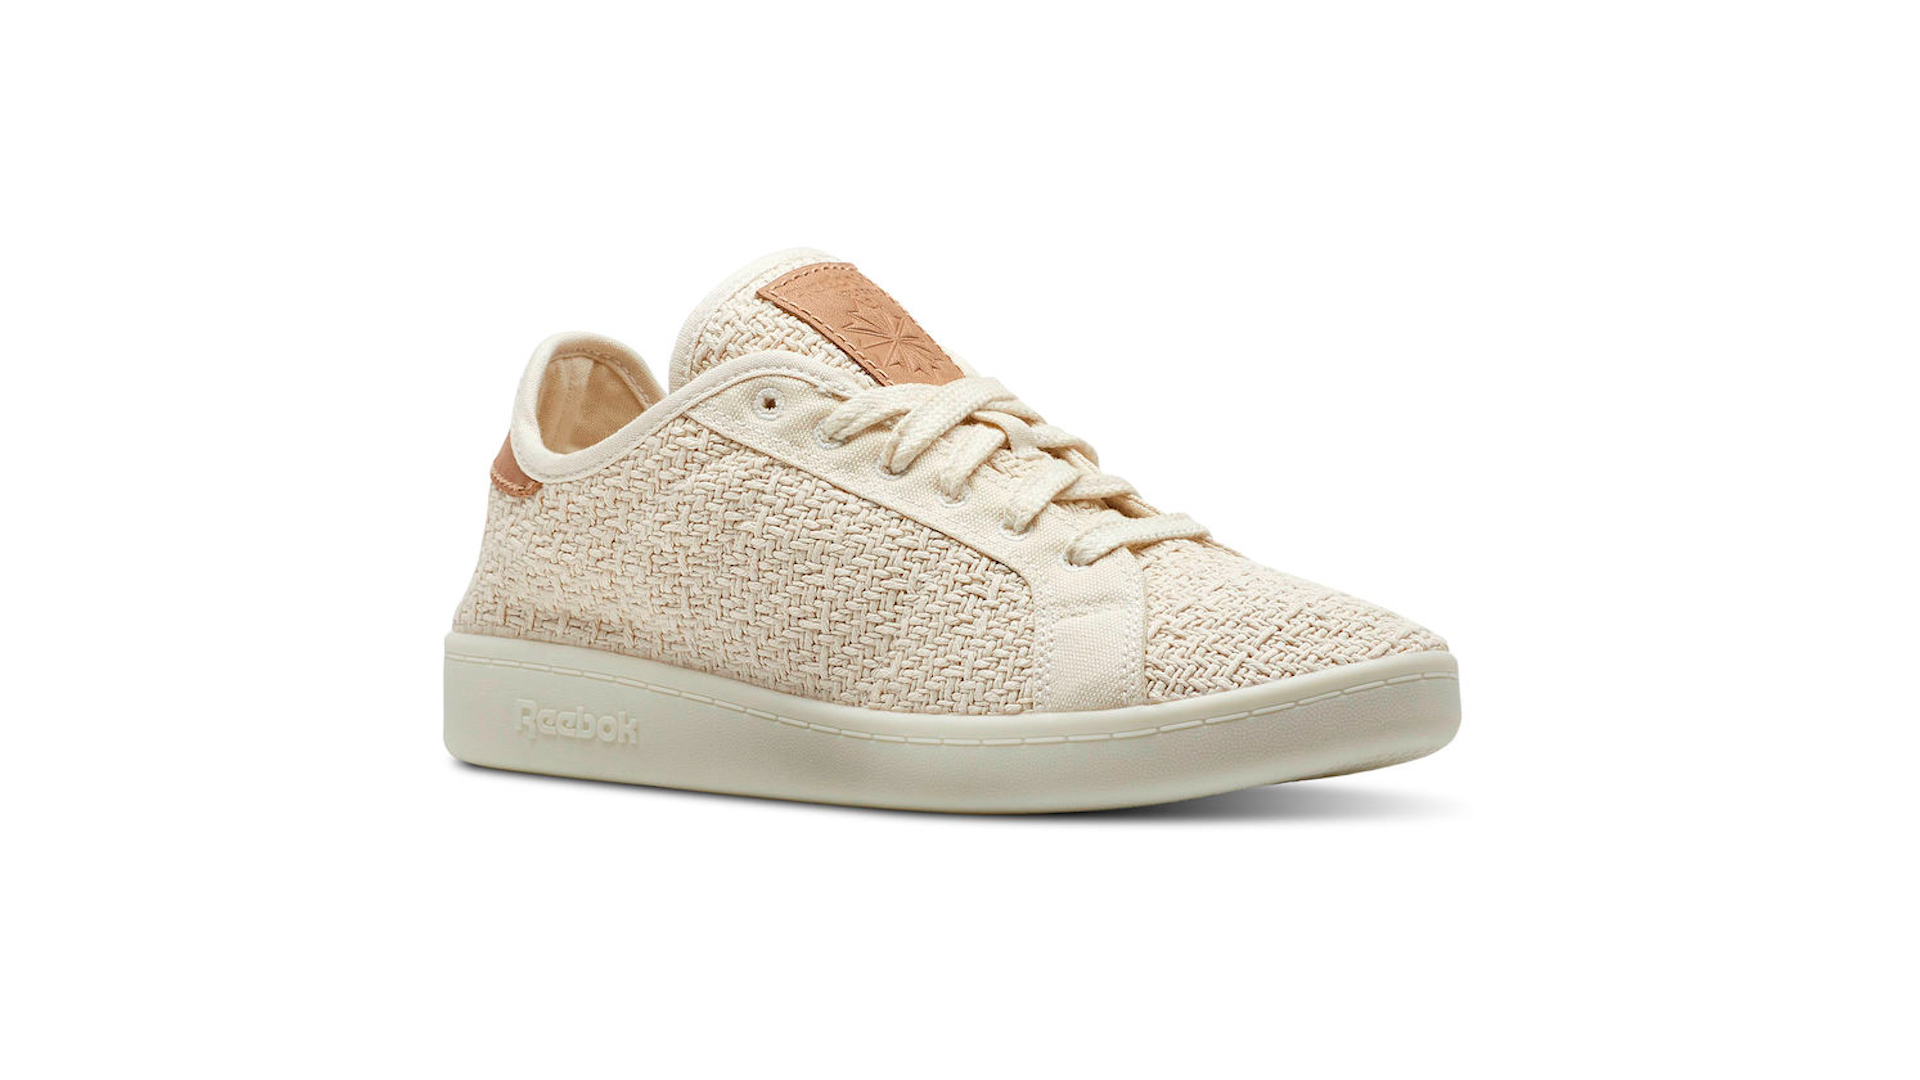 Reebok releases plant-based sneakers made from corn and cotton 9a5cda787